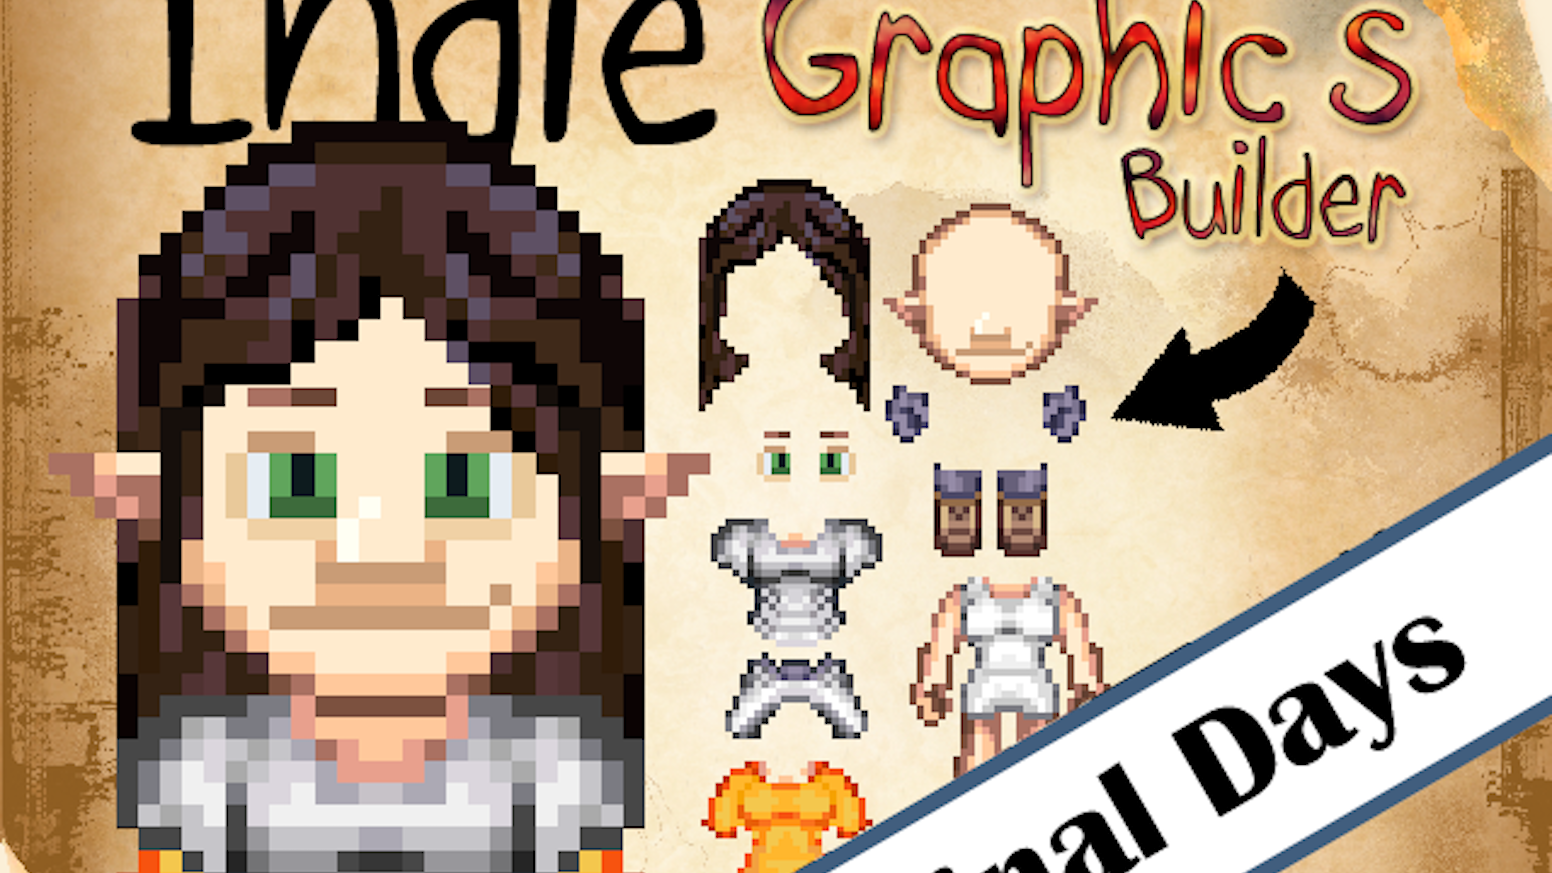 Indie Graphics Builder #2 (Create Sprites for Your Game) by